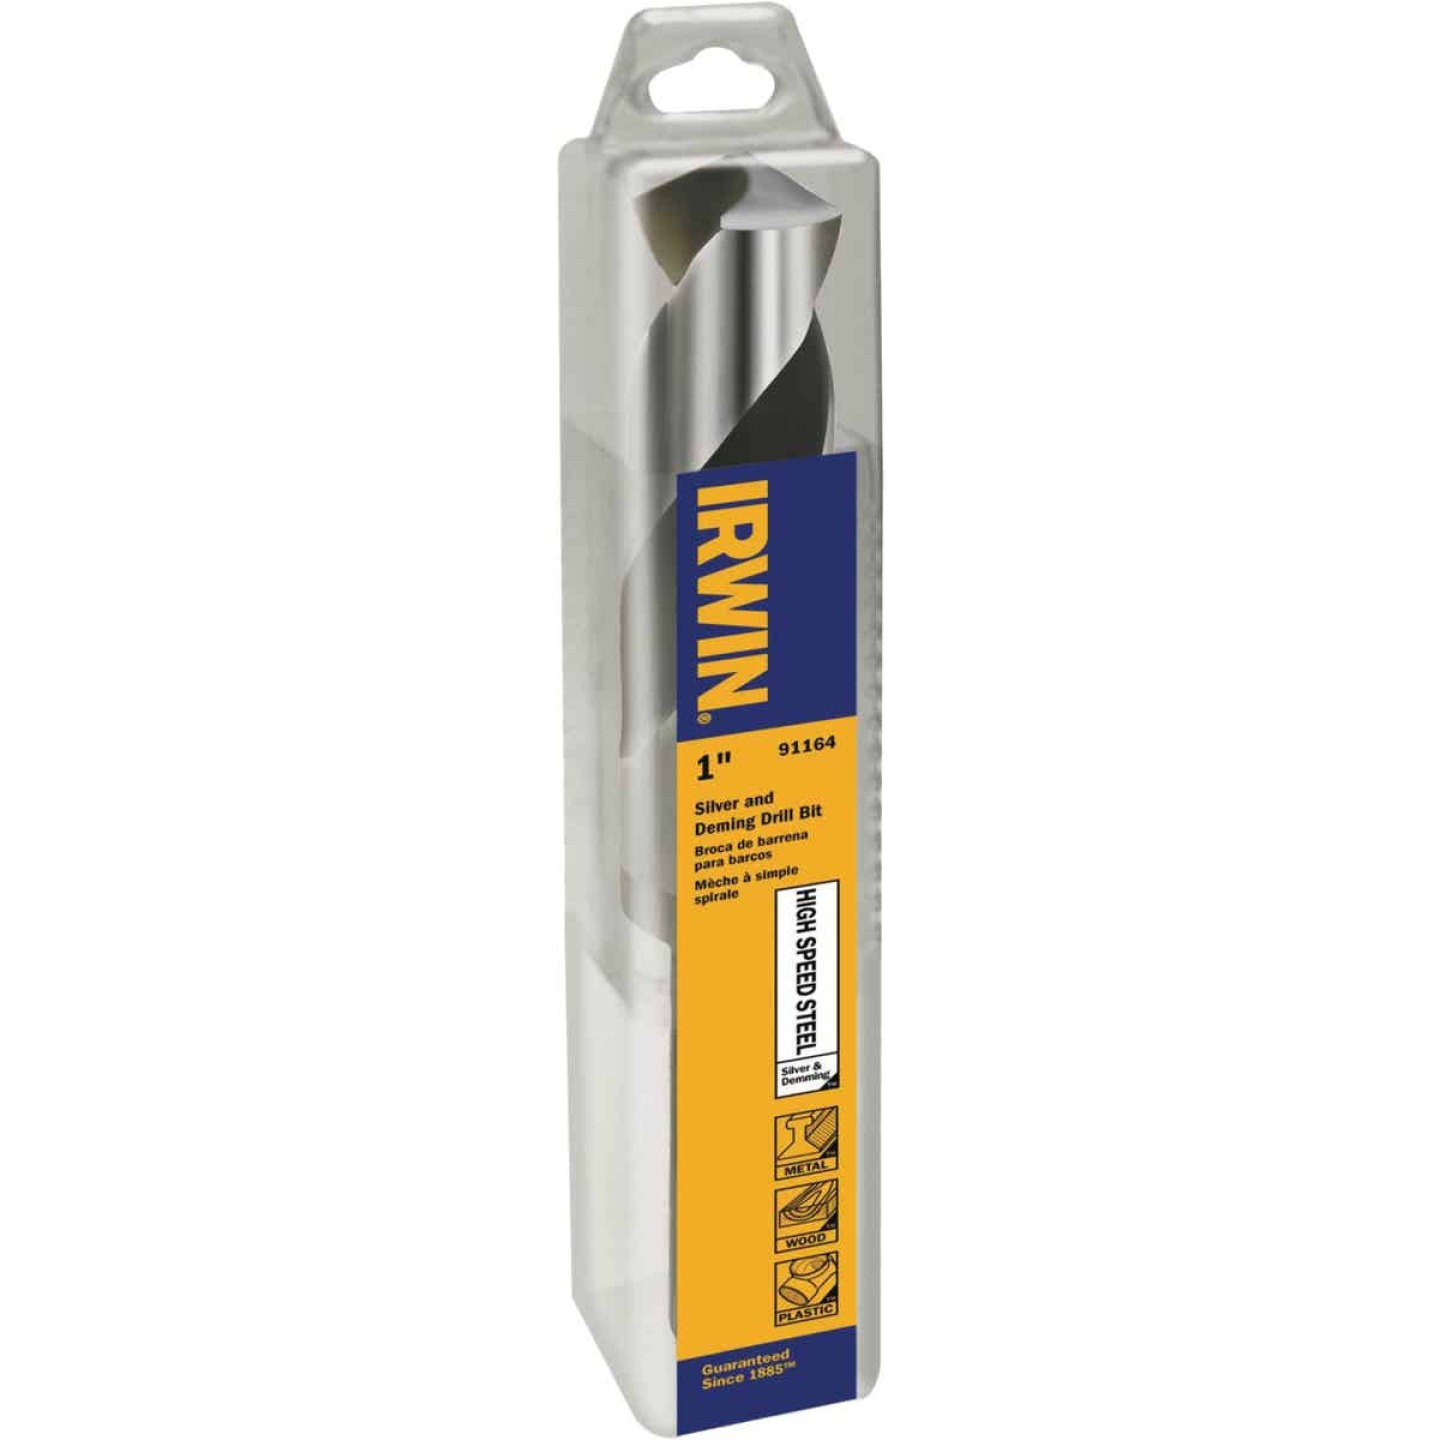 Irwin 1 In. Black Oxide Silver & Deming Drill Bit Image 1